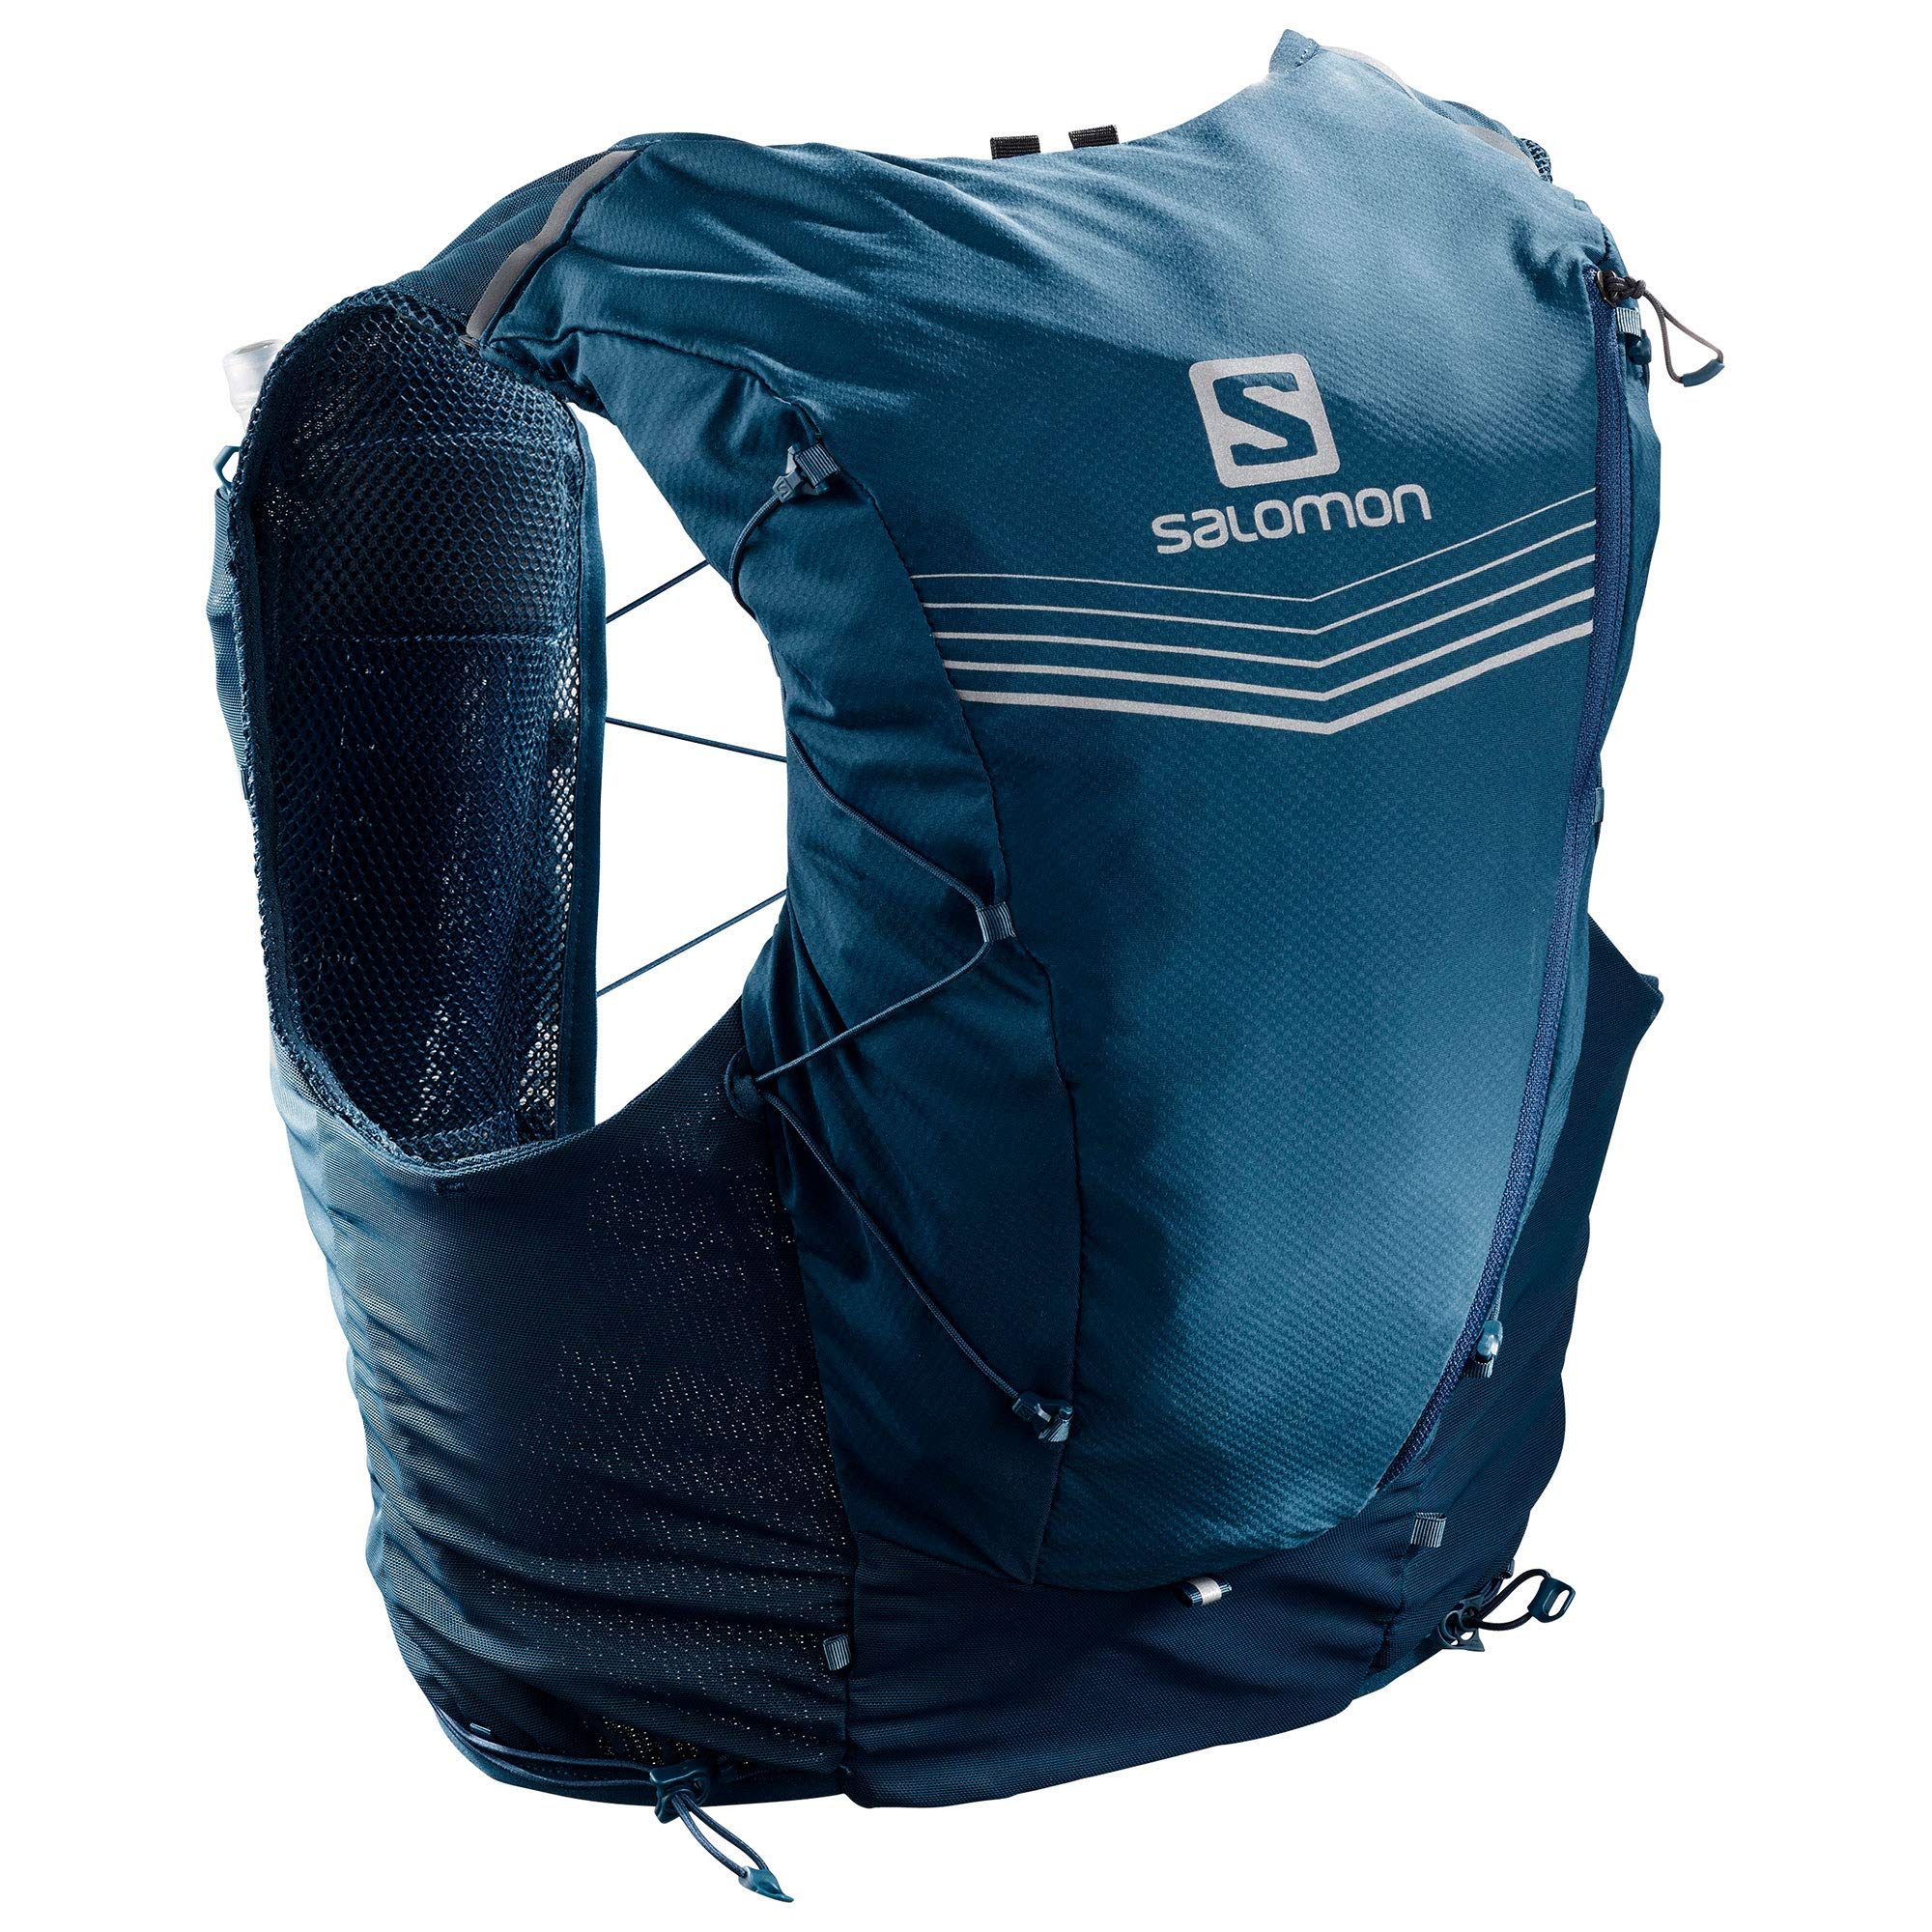 Salomon Adv Skin 12 Set Hydration Stretch Pack, Poseidon/Night, Medium by Salomon (Image #1)